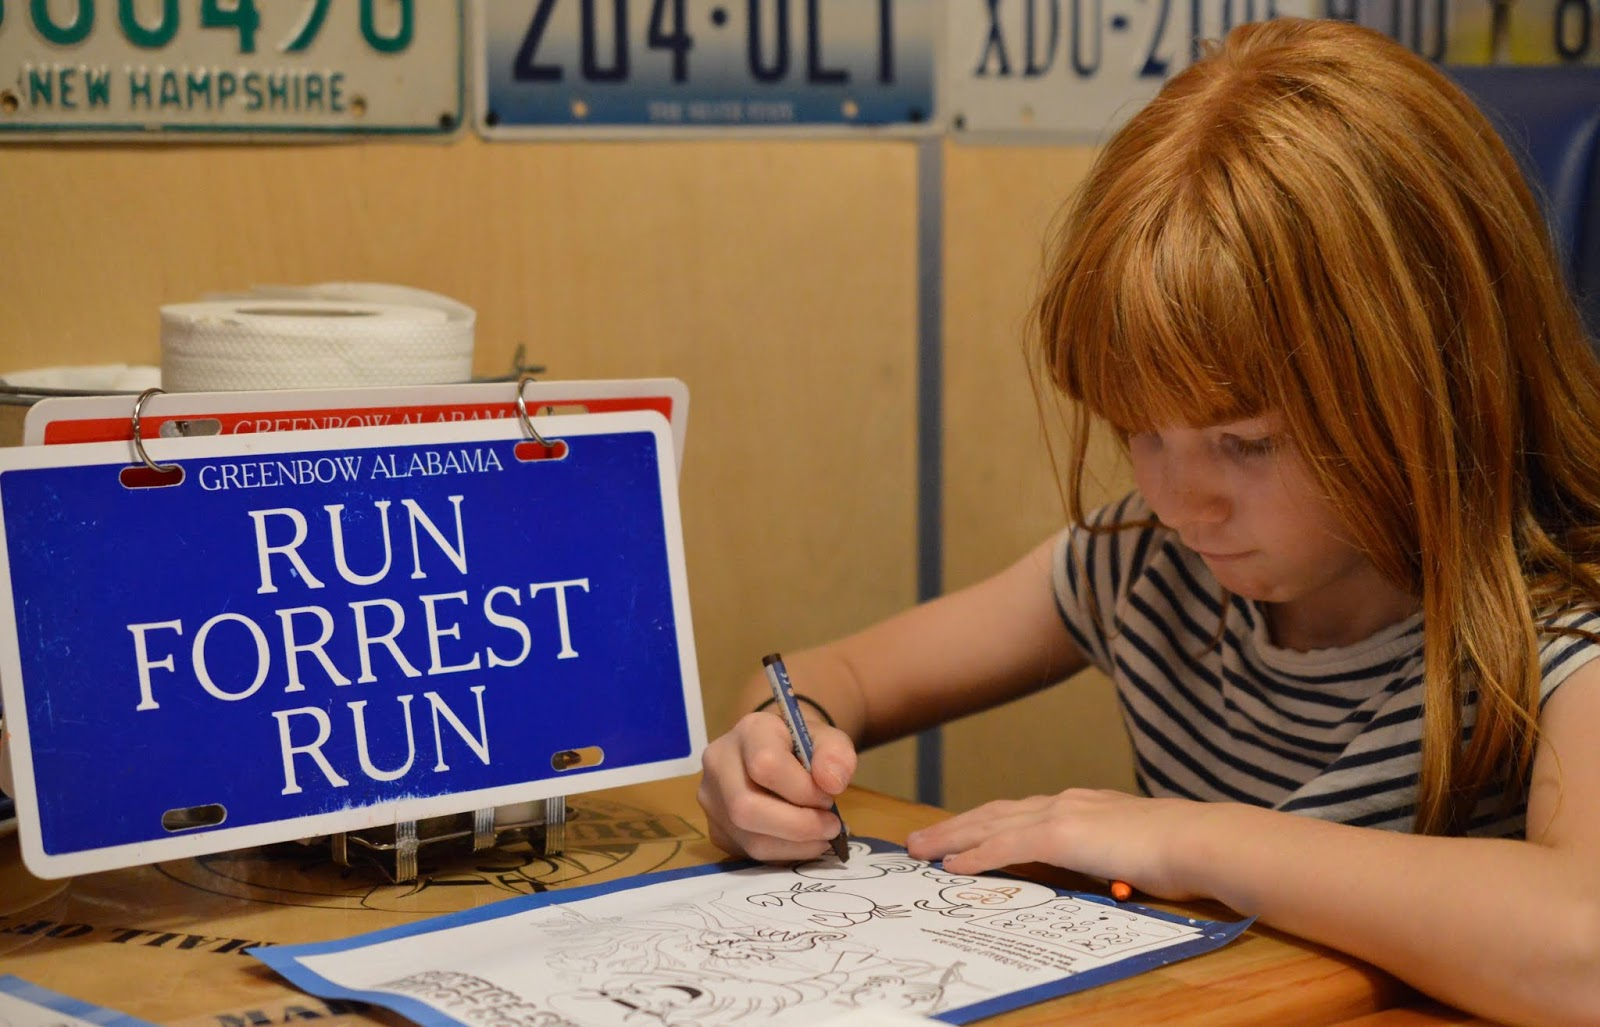 Dining with Kids in London | Bubba Gump Shrimp Leicester Square Review  - run forrest run sign